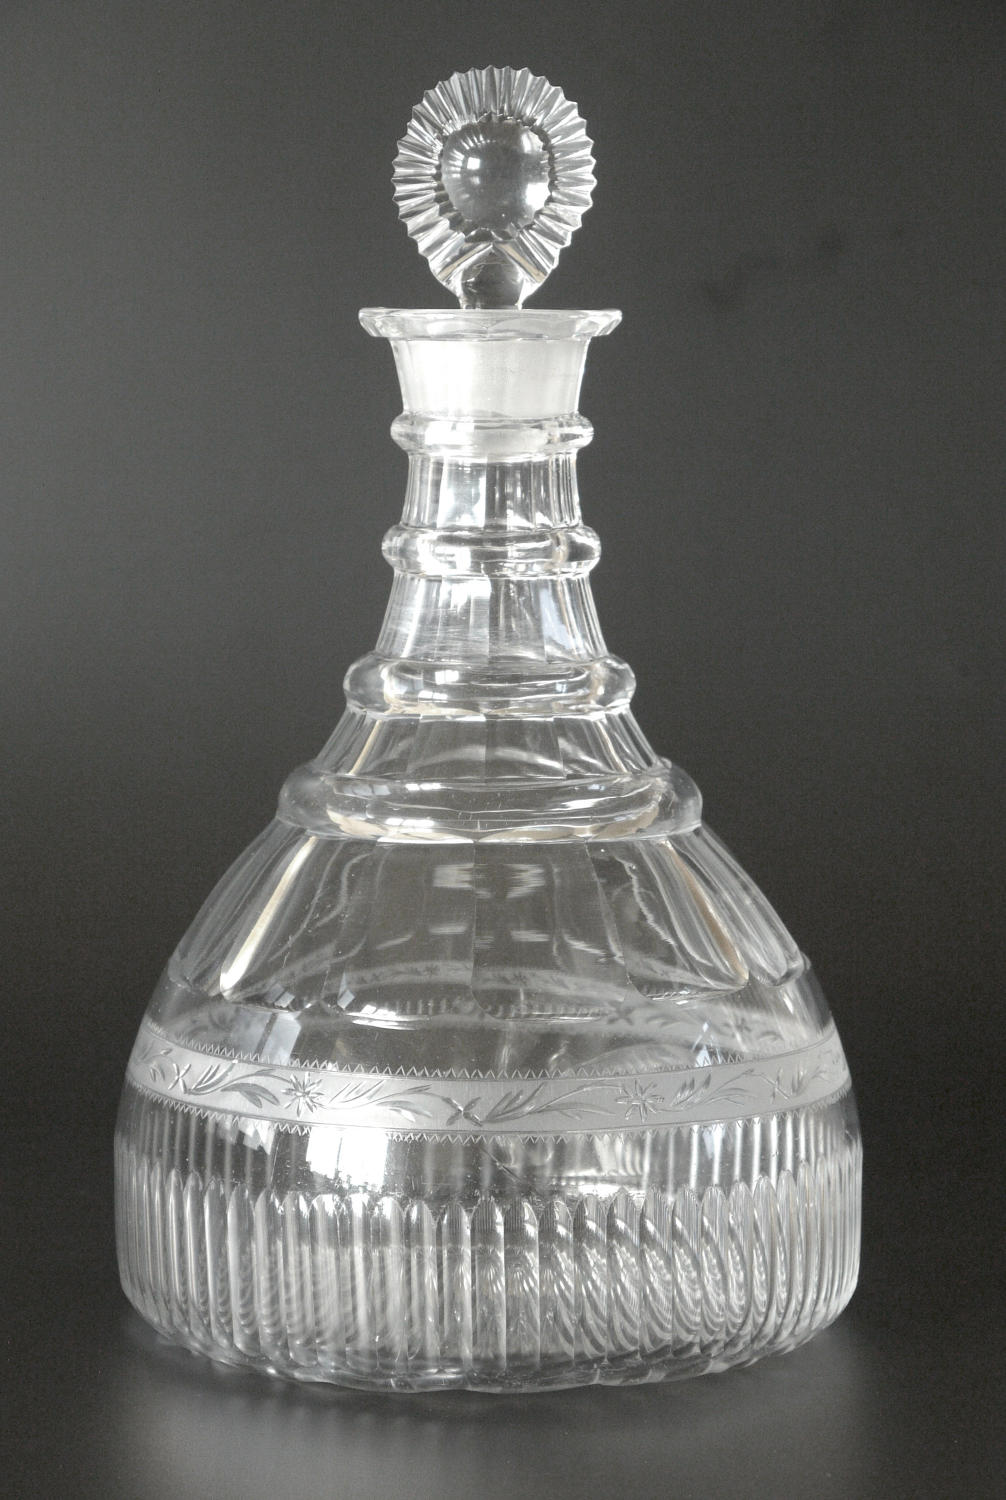 A finely engraved ship's decanter